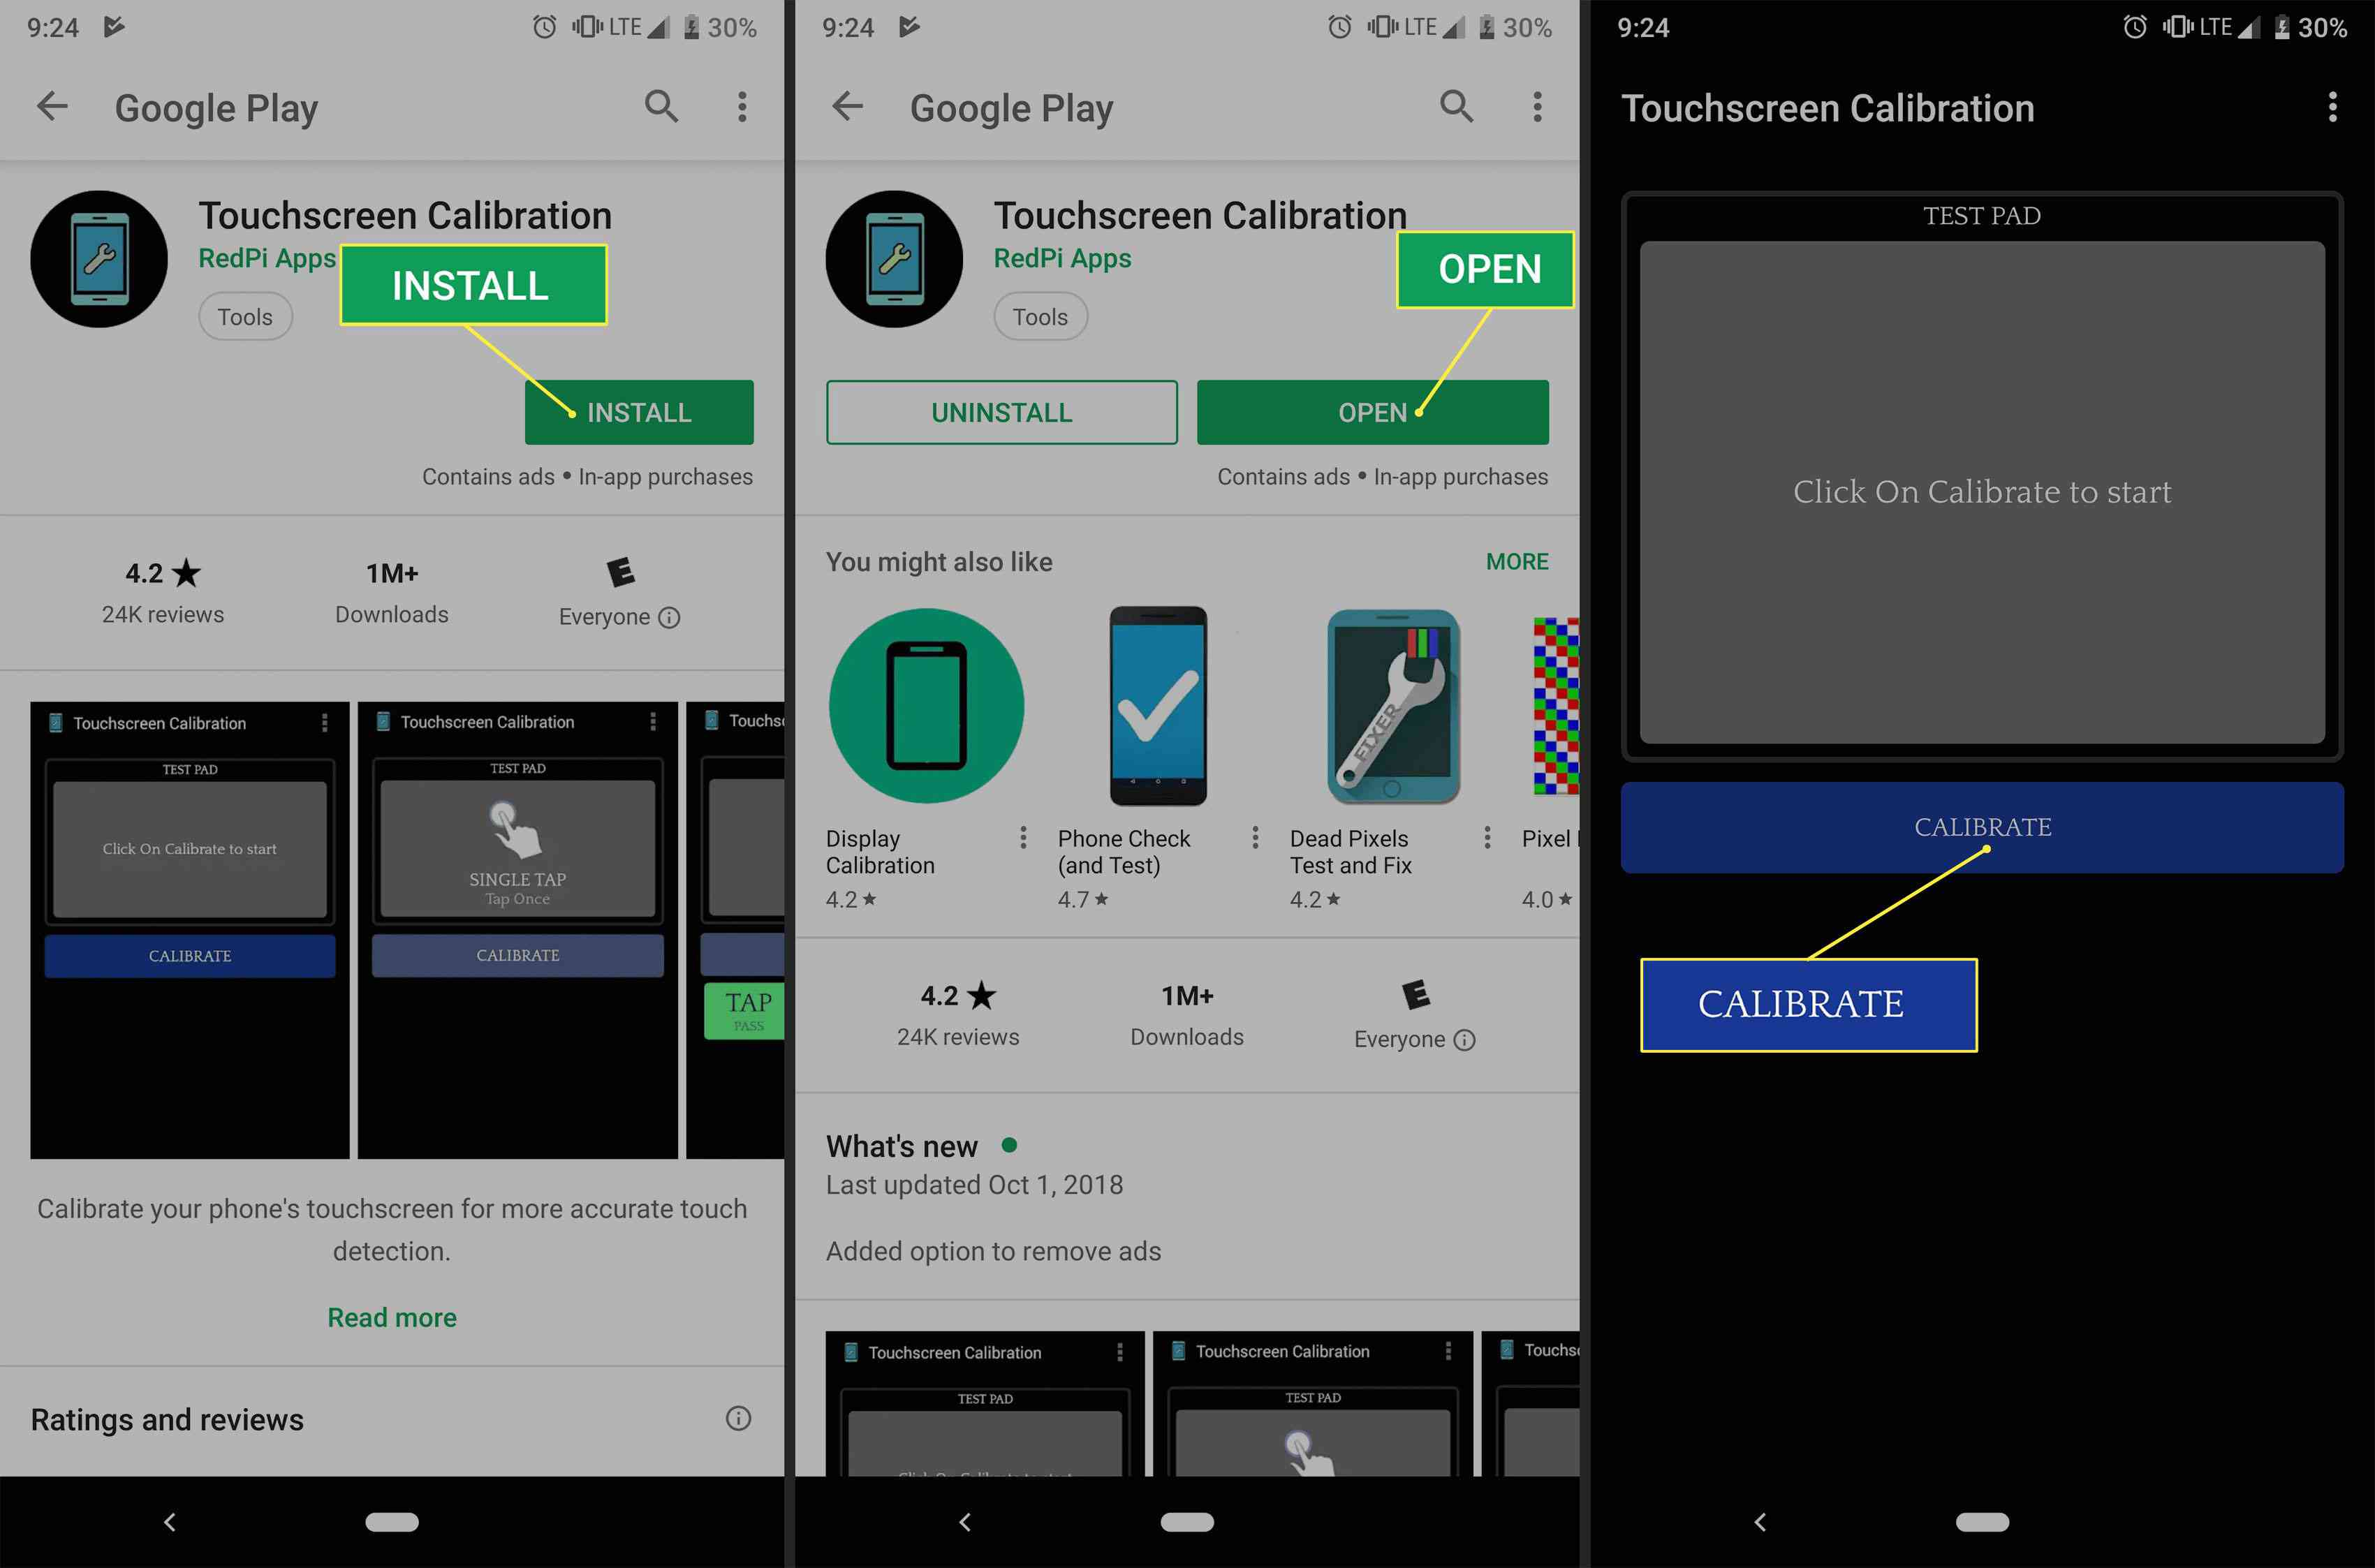 Installing the Touchscreen Calibration app